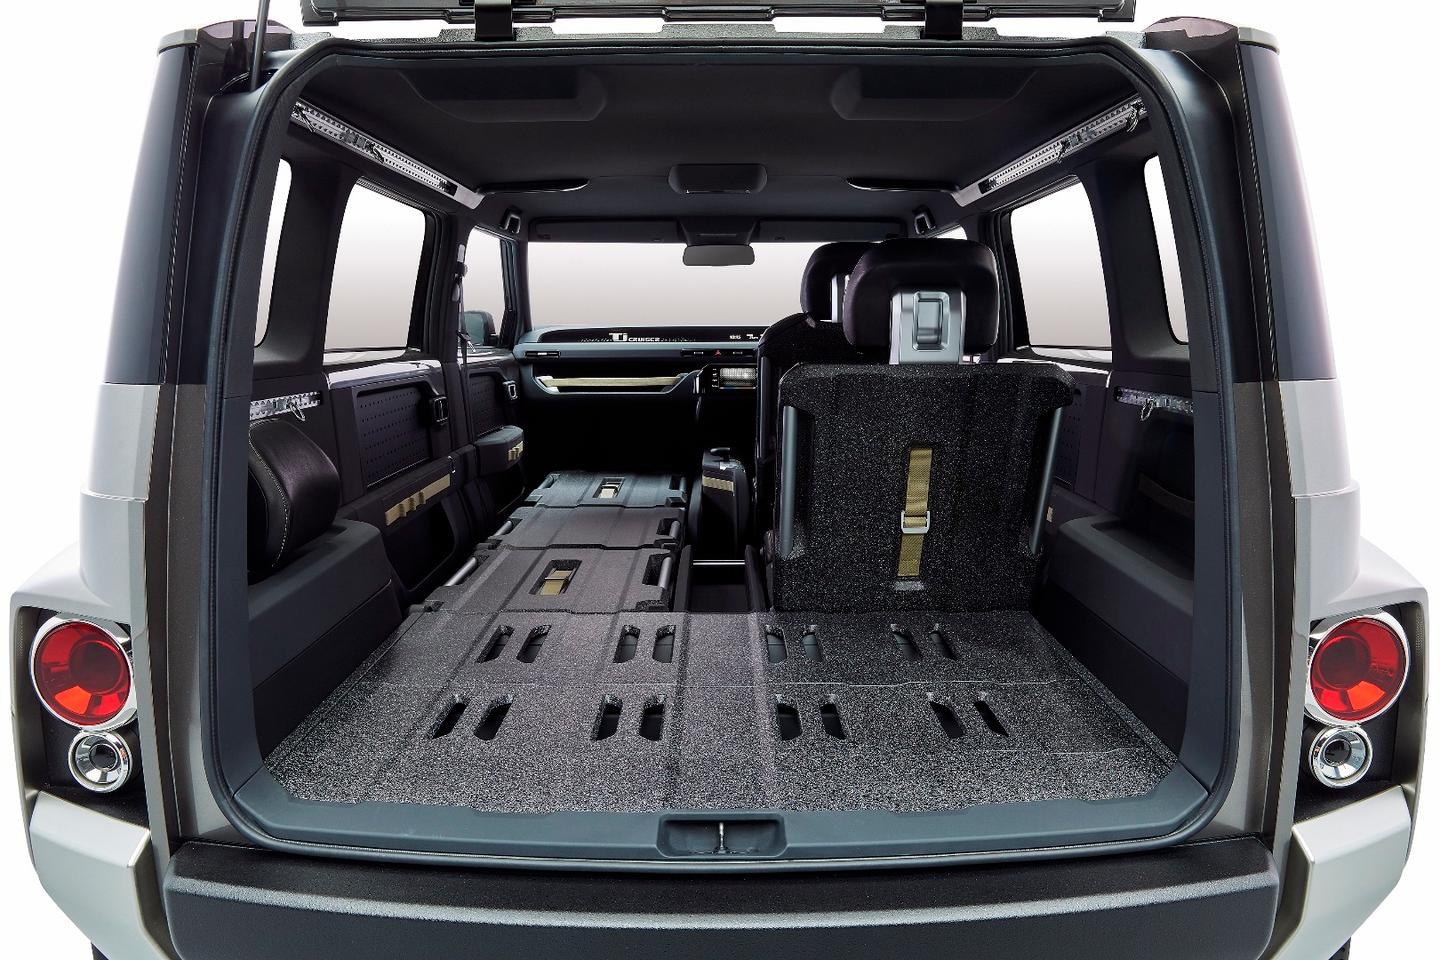 Among the Toyota Tj Cruiser's van-like features are front and rear passenger seats that can be reclined totally flat, allowing objects up to 3 m (9.8 ft) long to be stored inside